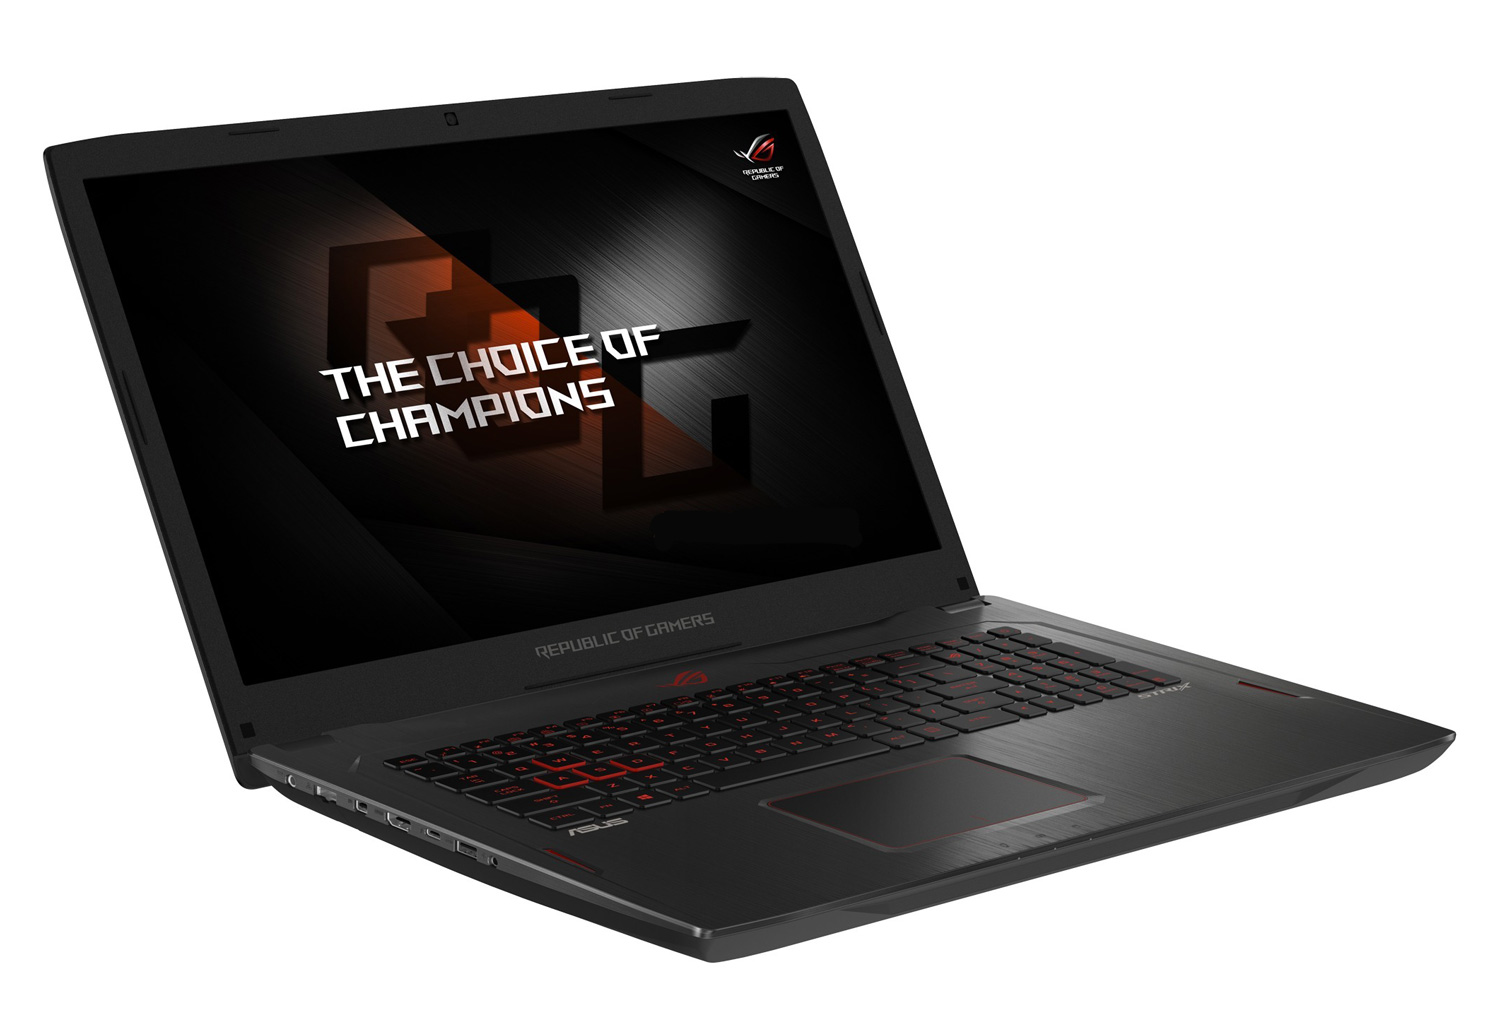 asus rog strix gl702zc gc201t achetez au meilleur prix. Black Bedroom Furniture Sets. Home Design Ideas